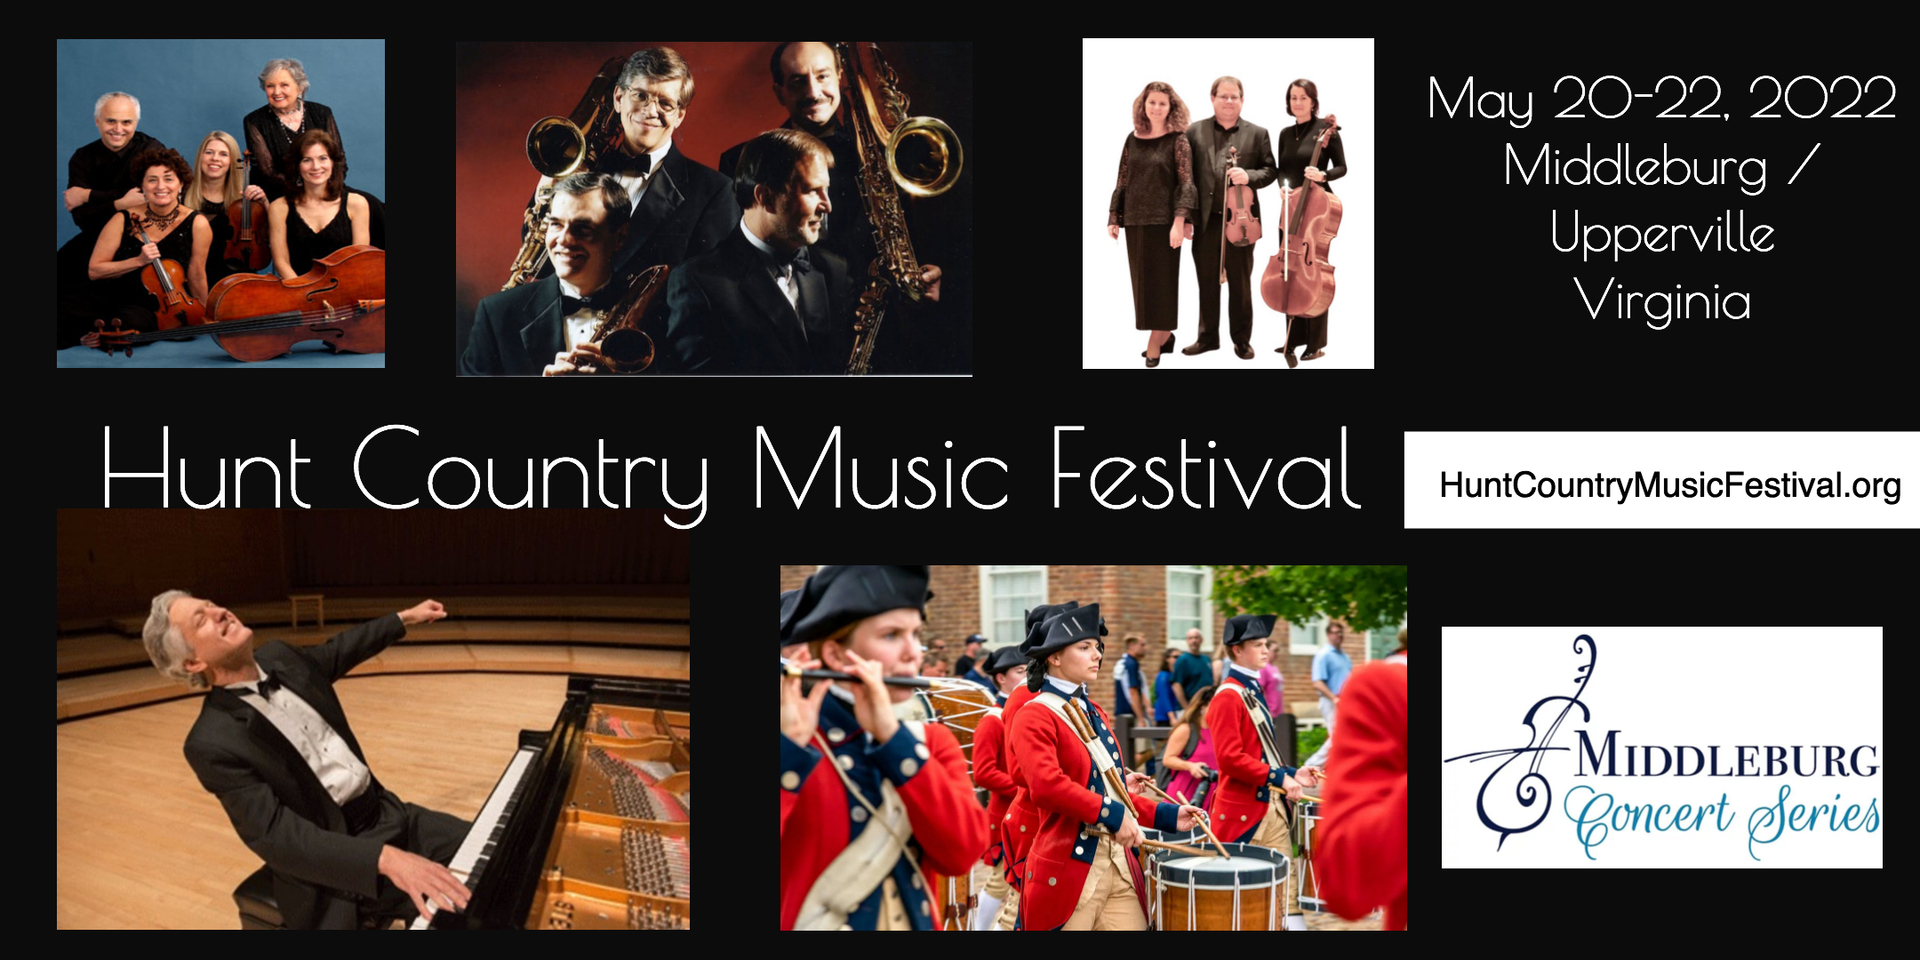 Hunt Country Music Festival